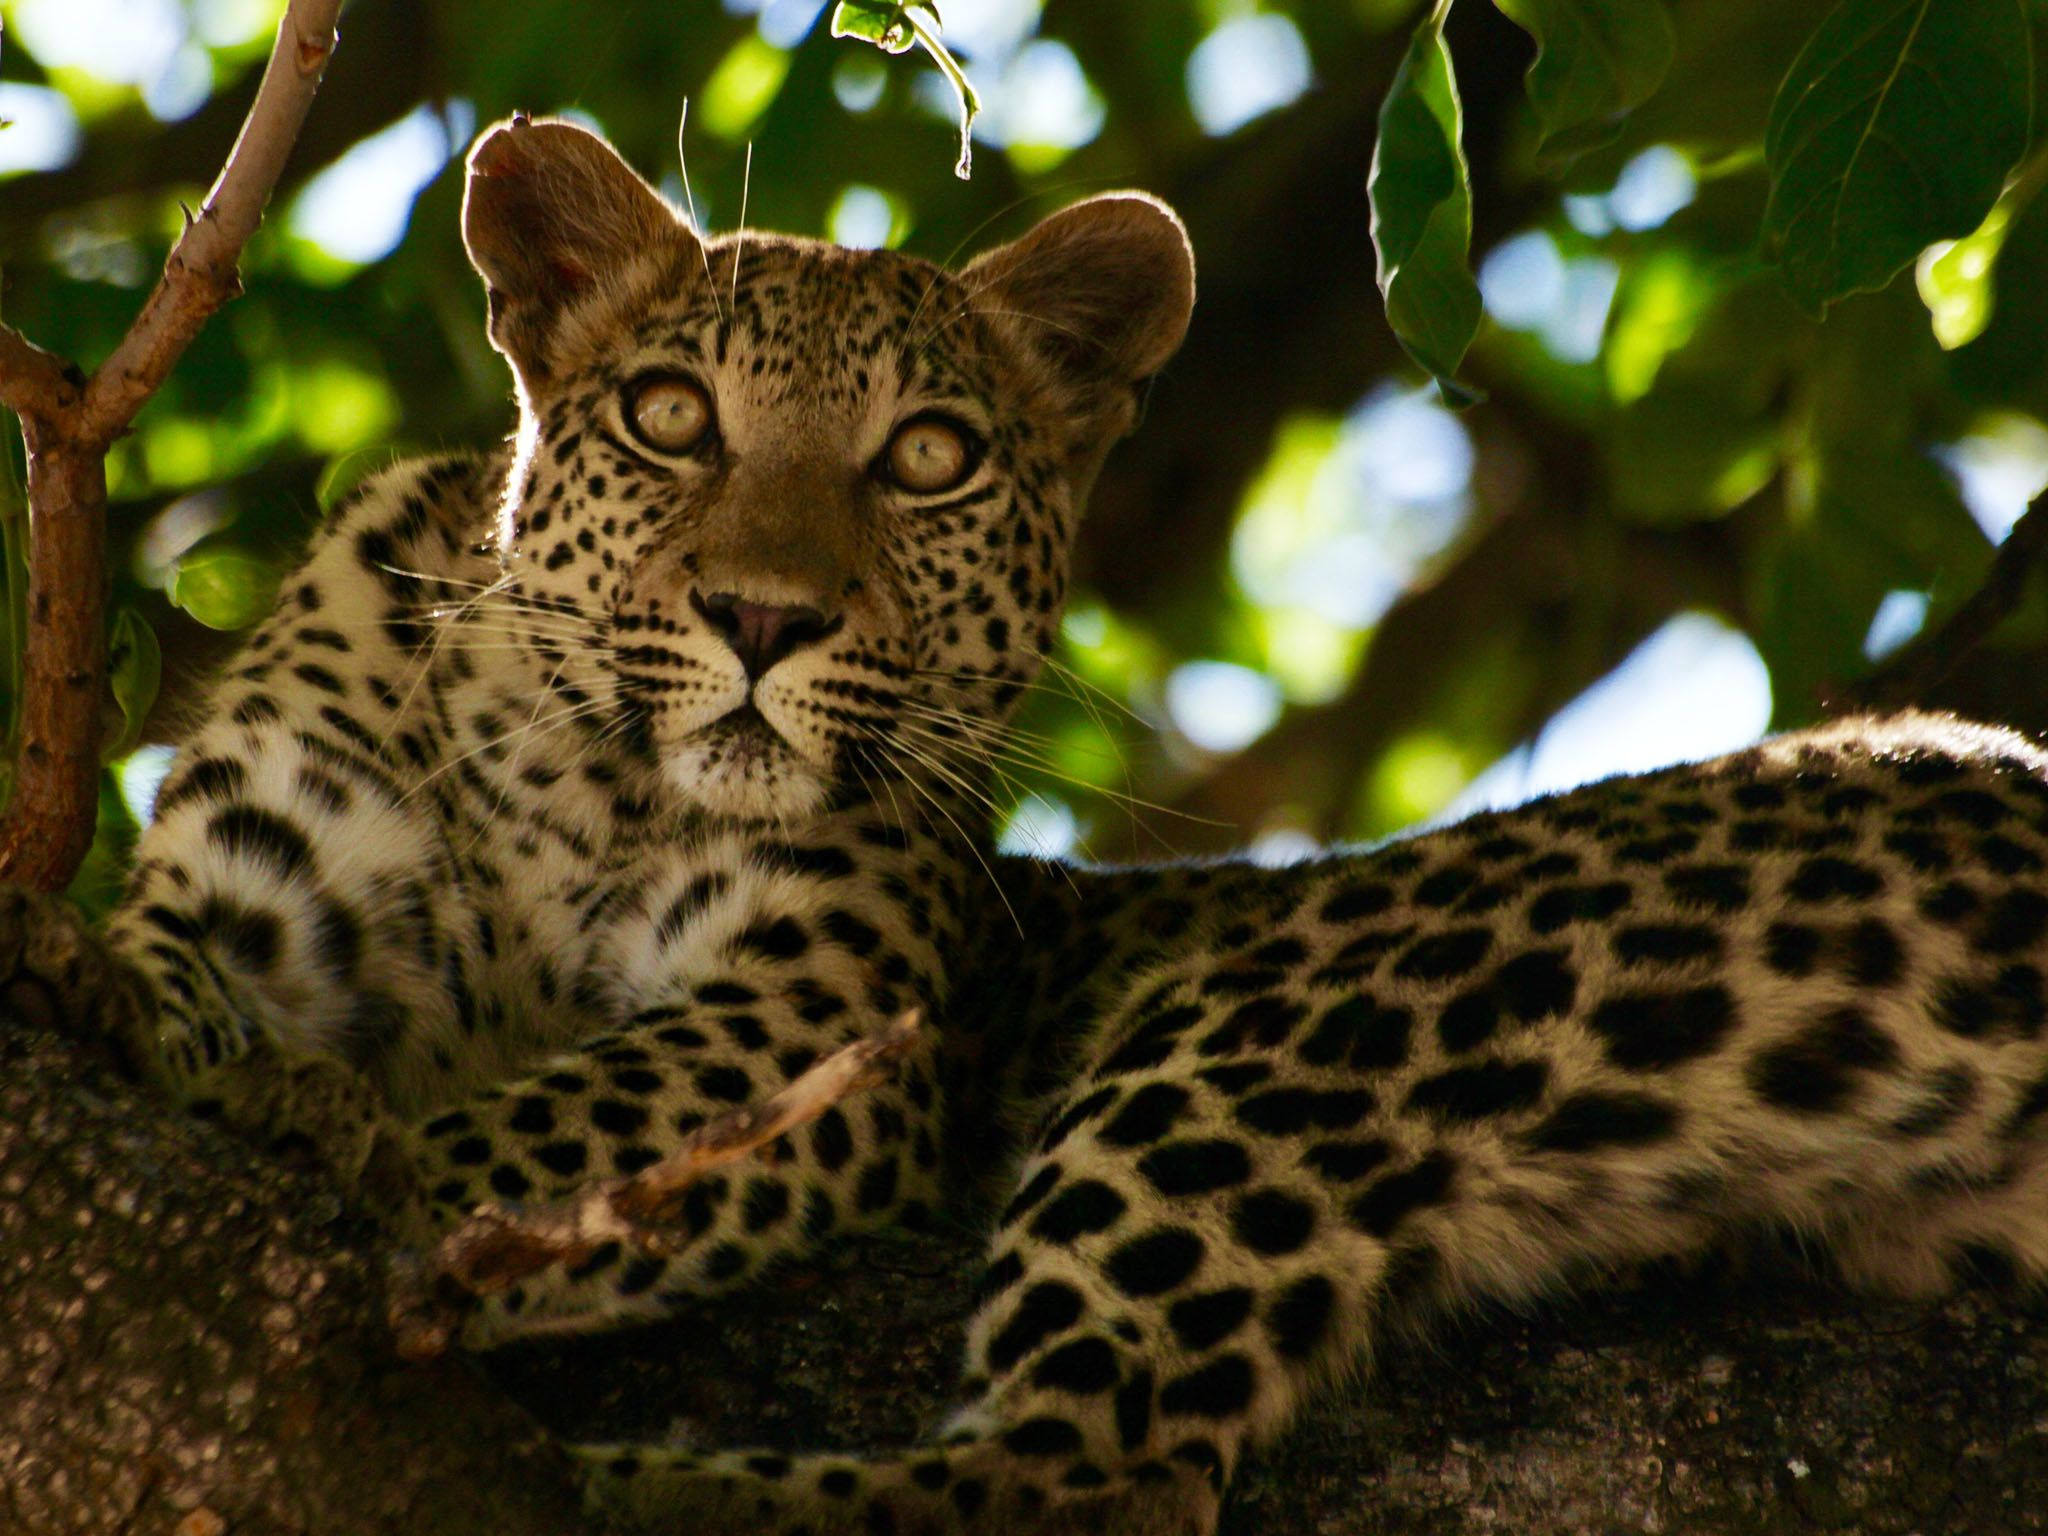 Botswana: Leopard lounging in tree. This image is from Safari Brothers. [Photo of the day - سپتامبر 2016]